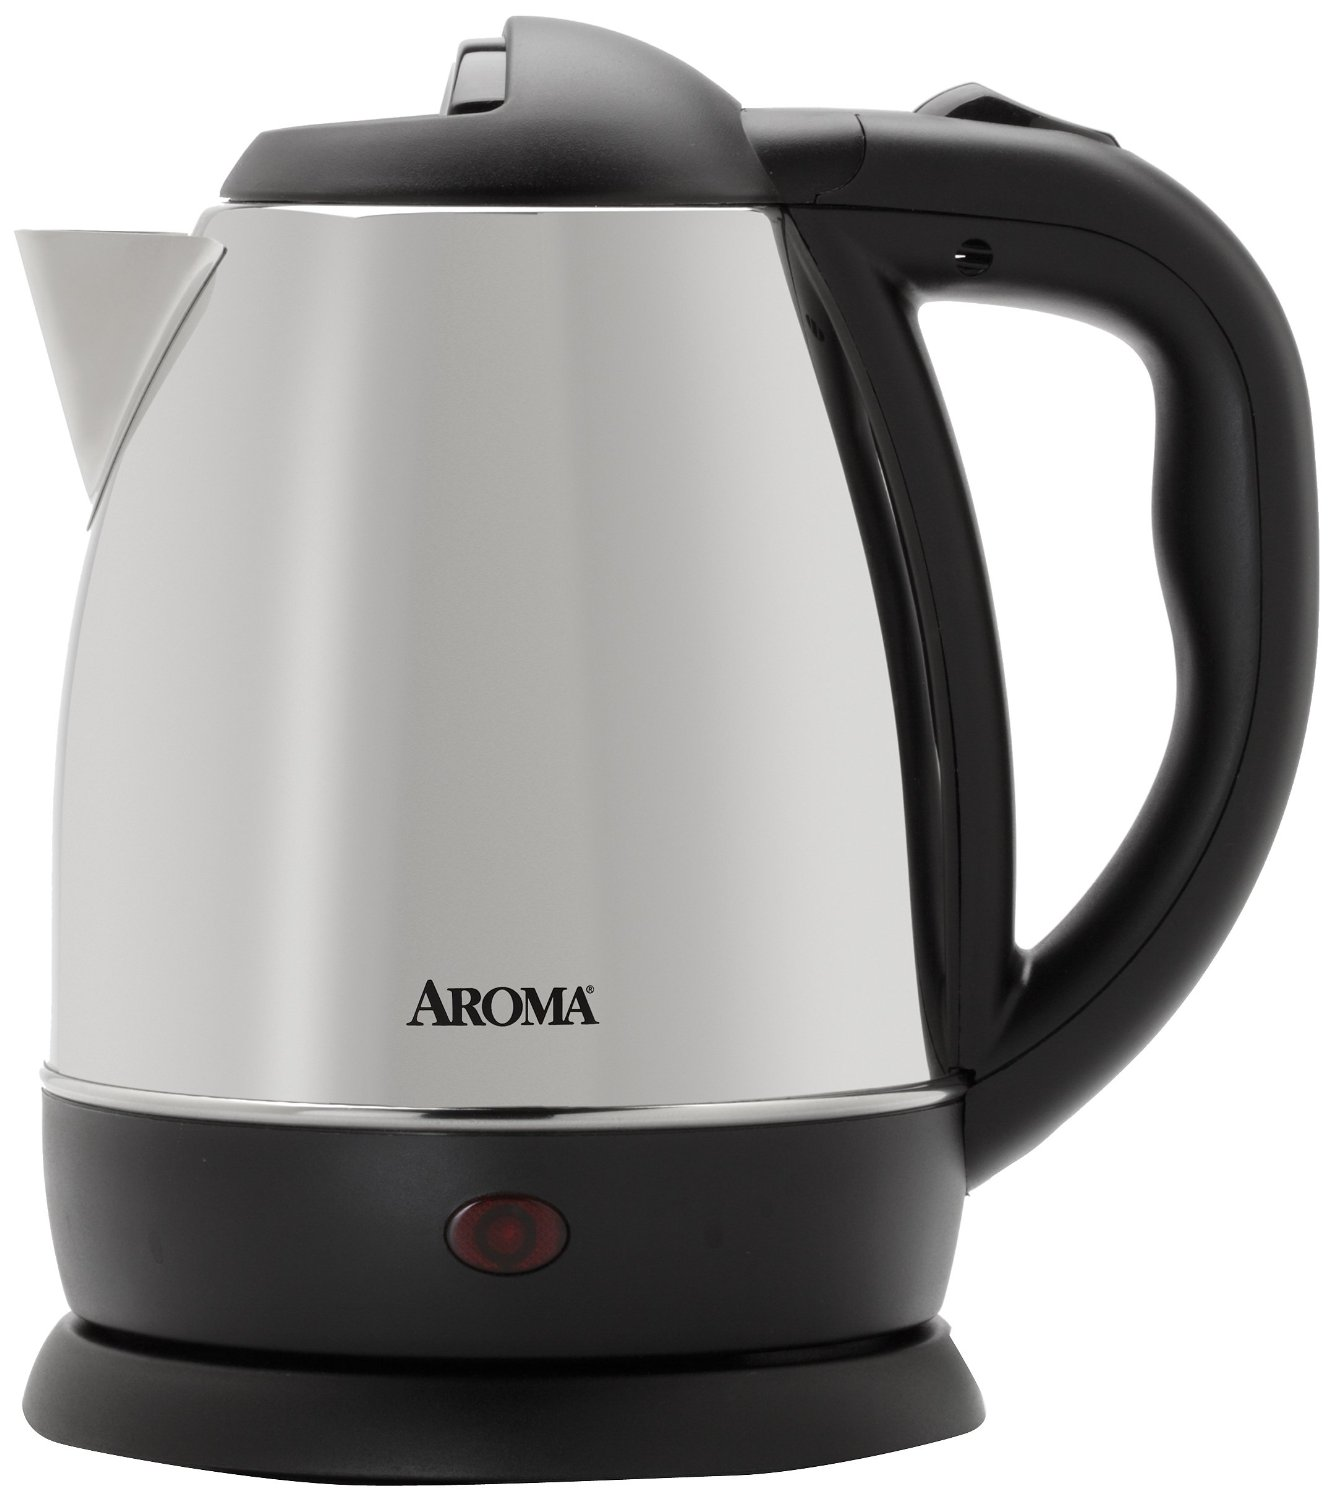 Aroma 1.2 Litre (5-Cup) Stainless Steel Cordless Electric Water Kettle